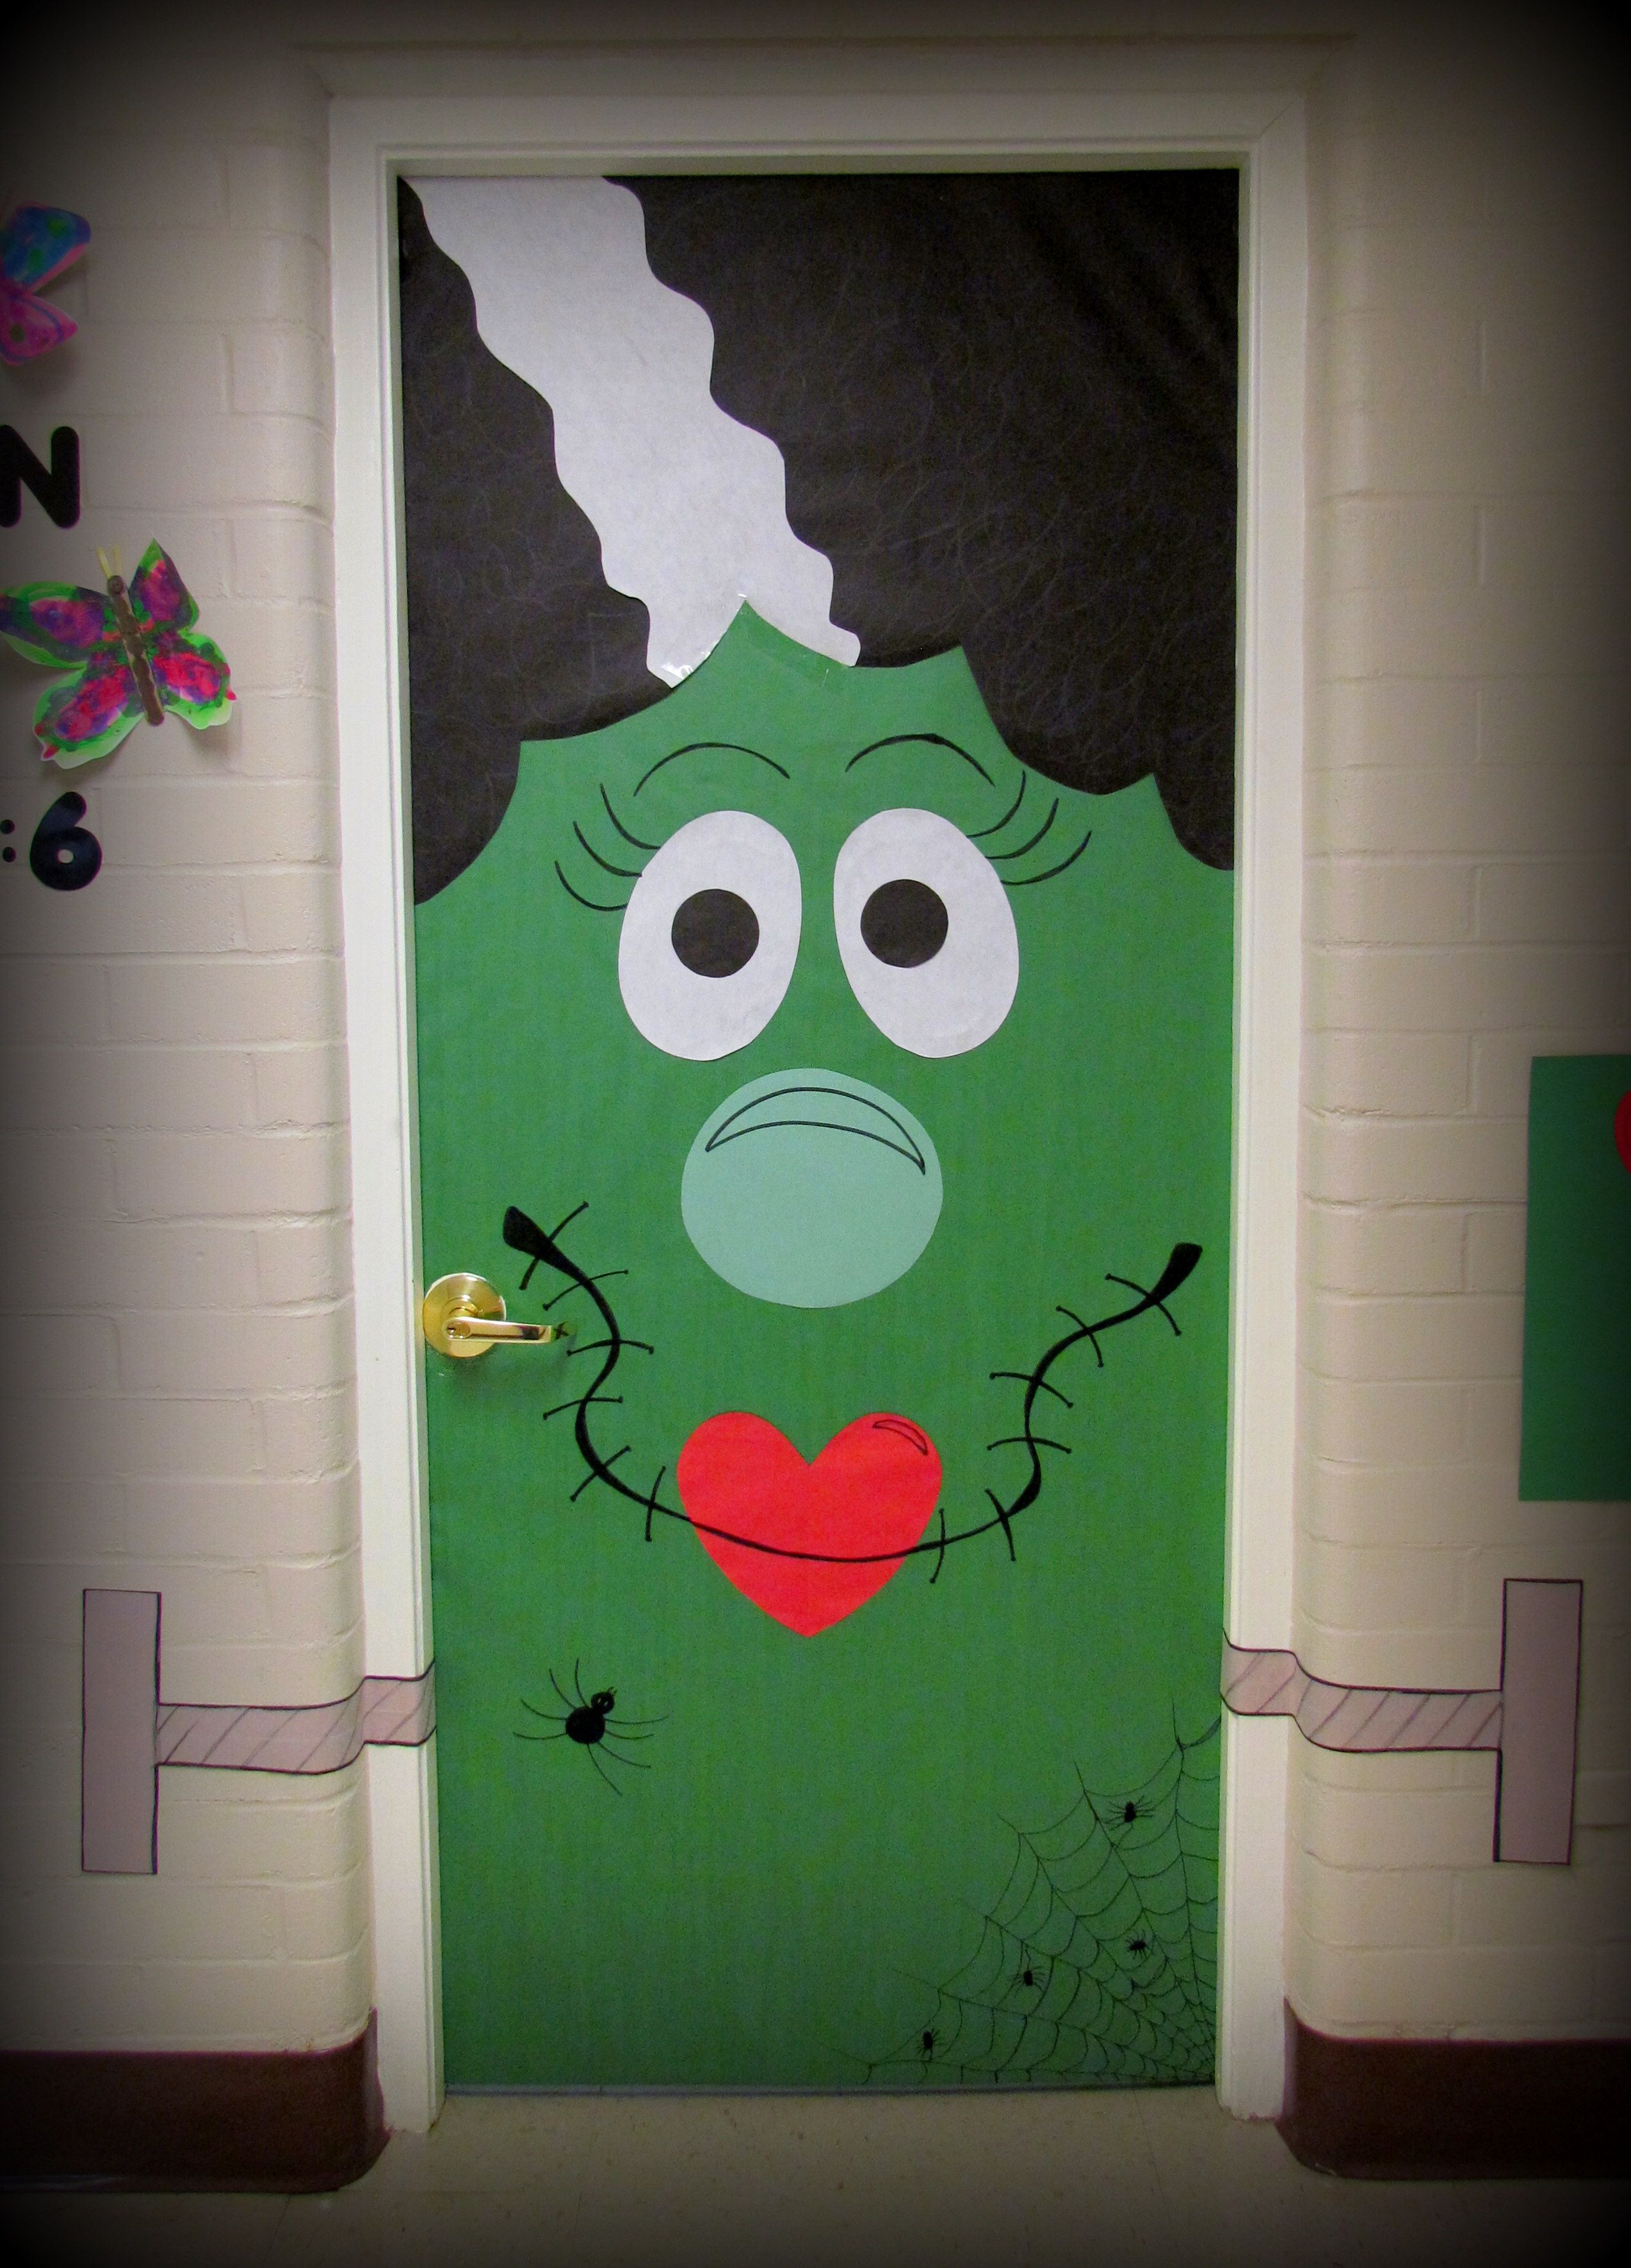 Le Meilleur Bride Of Frankenstein I Did For The Other Door In My Ce Mois Ci